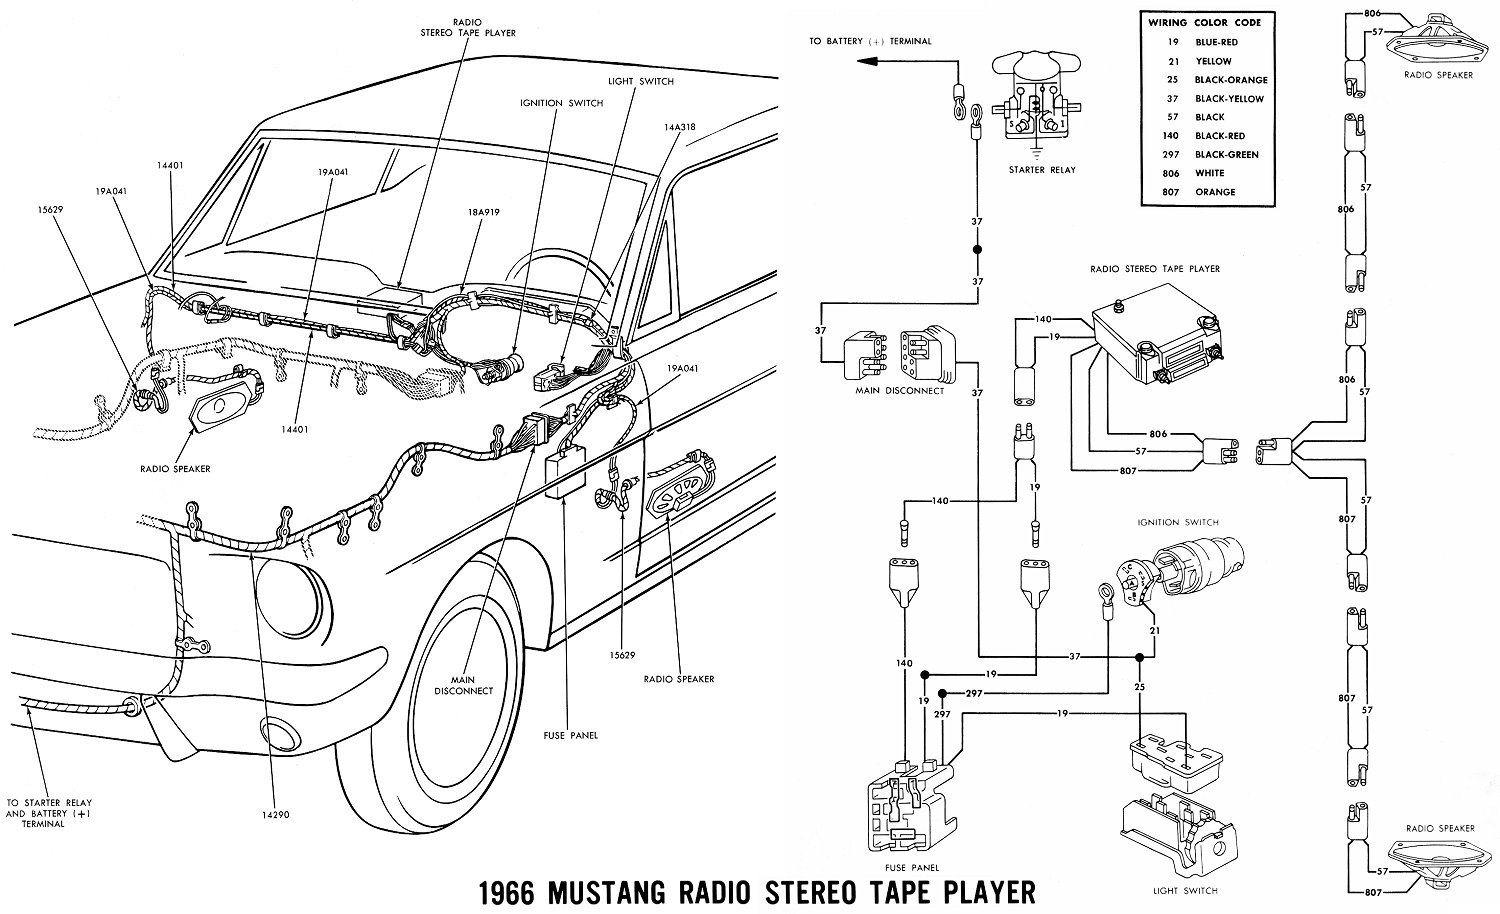 1966 mustang wiring diagrams average joe restoration 1966 mustang radio stereo tape player sciox Gallery